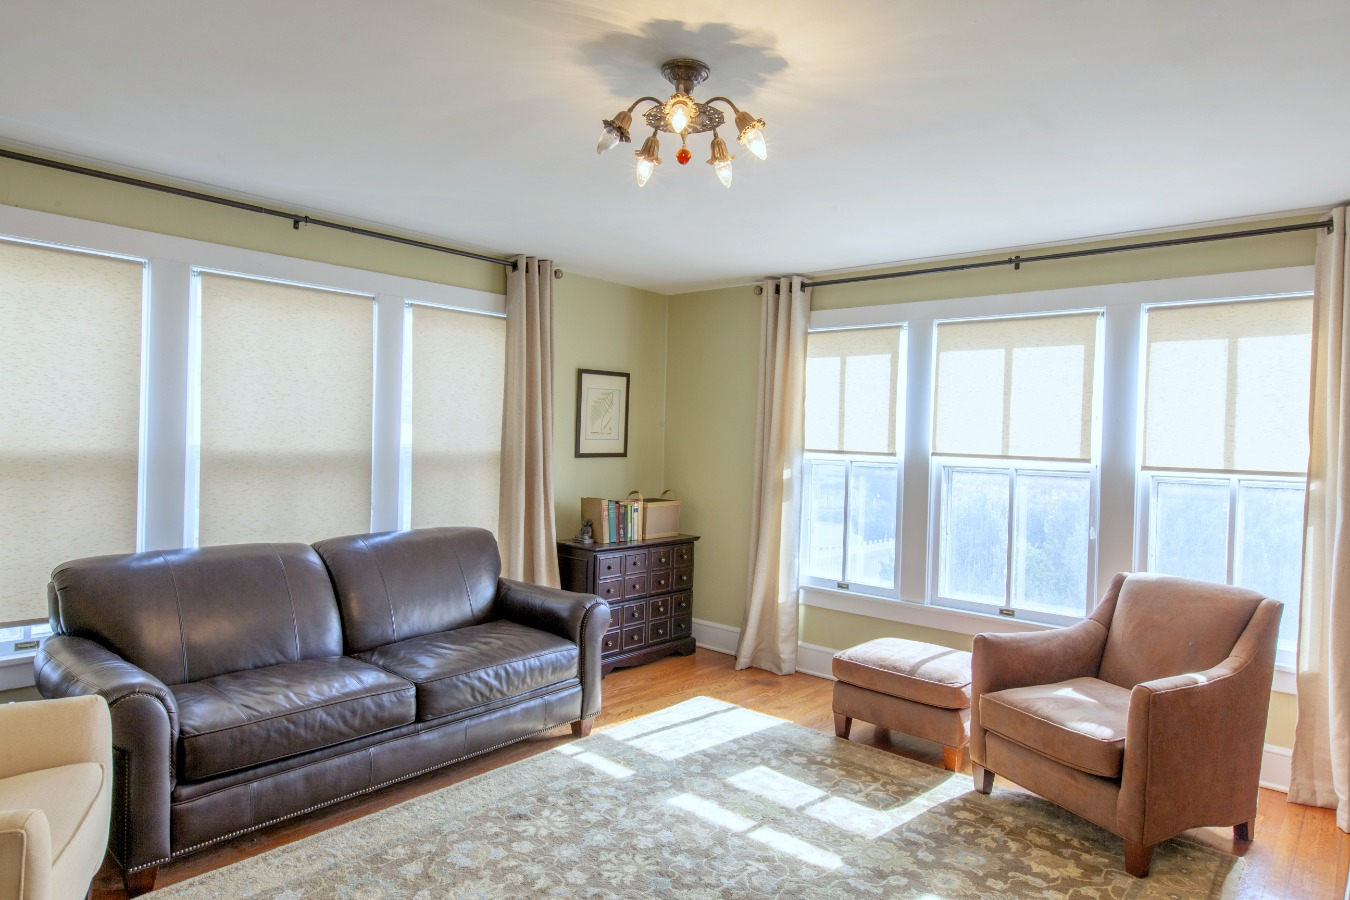 Front living room with windows on two walls